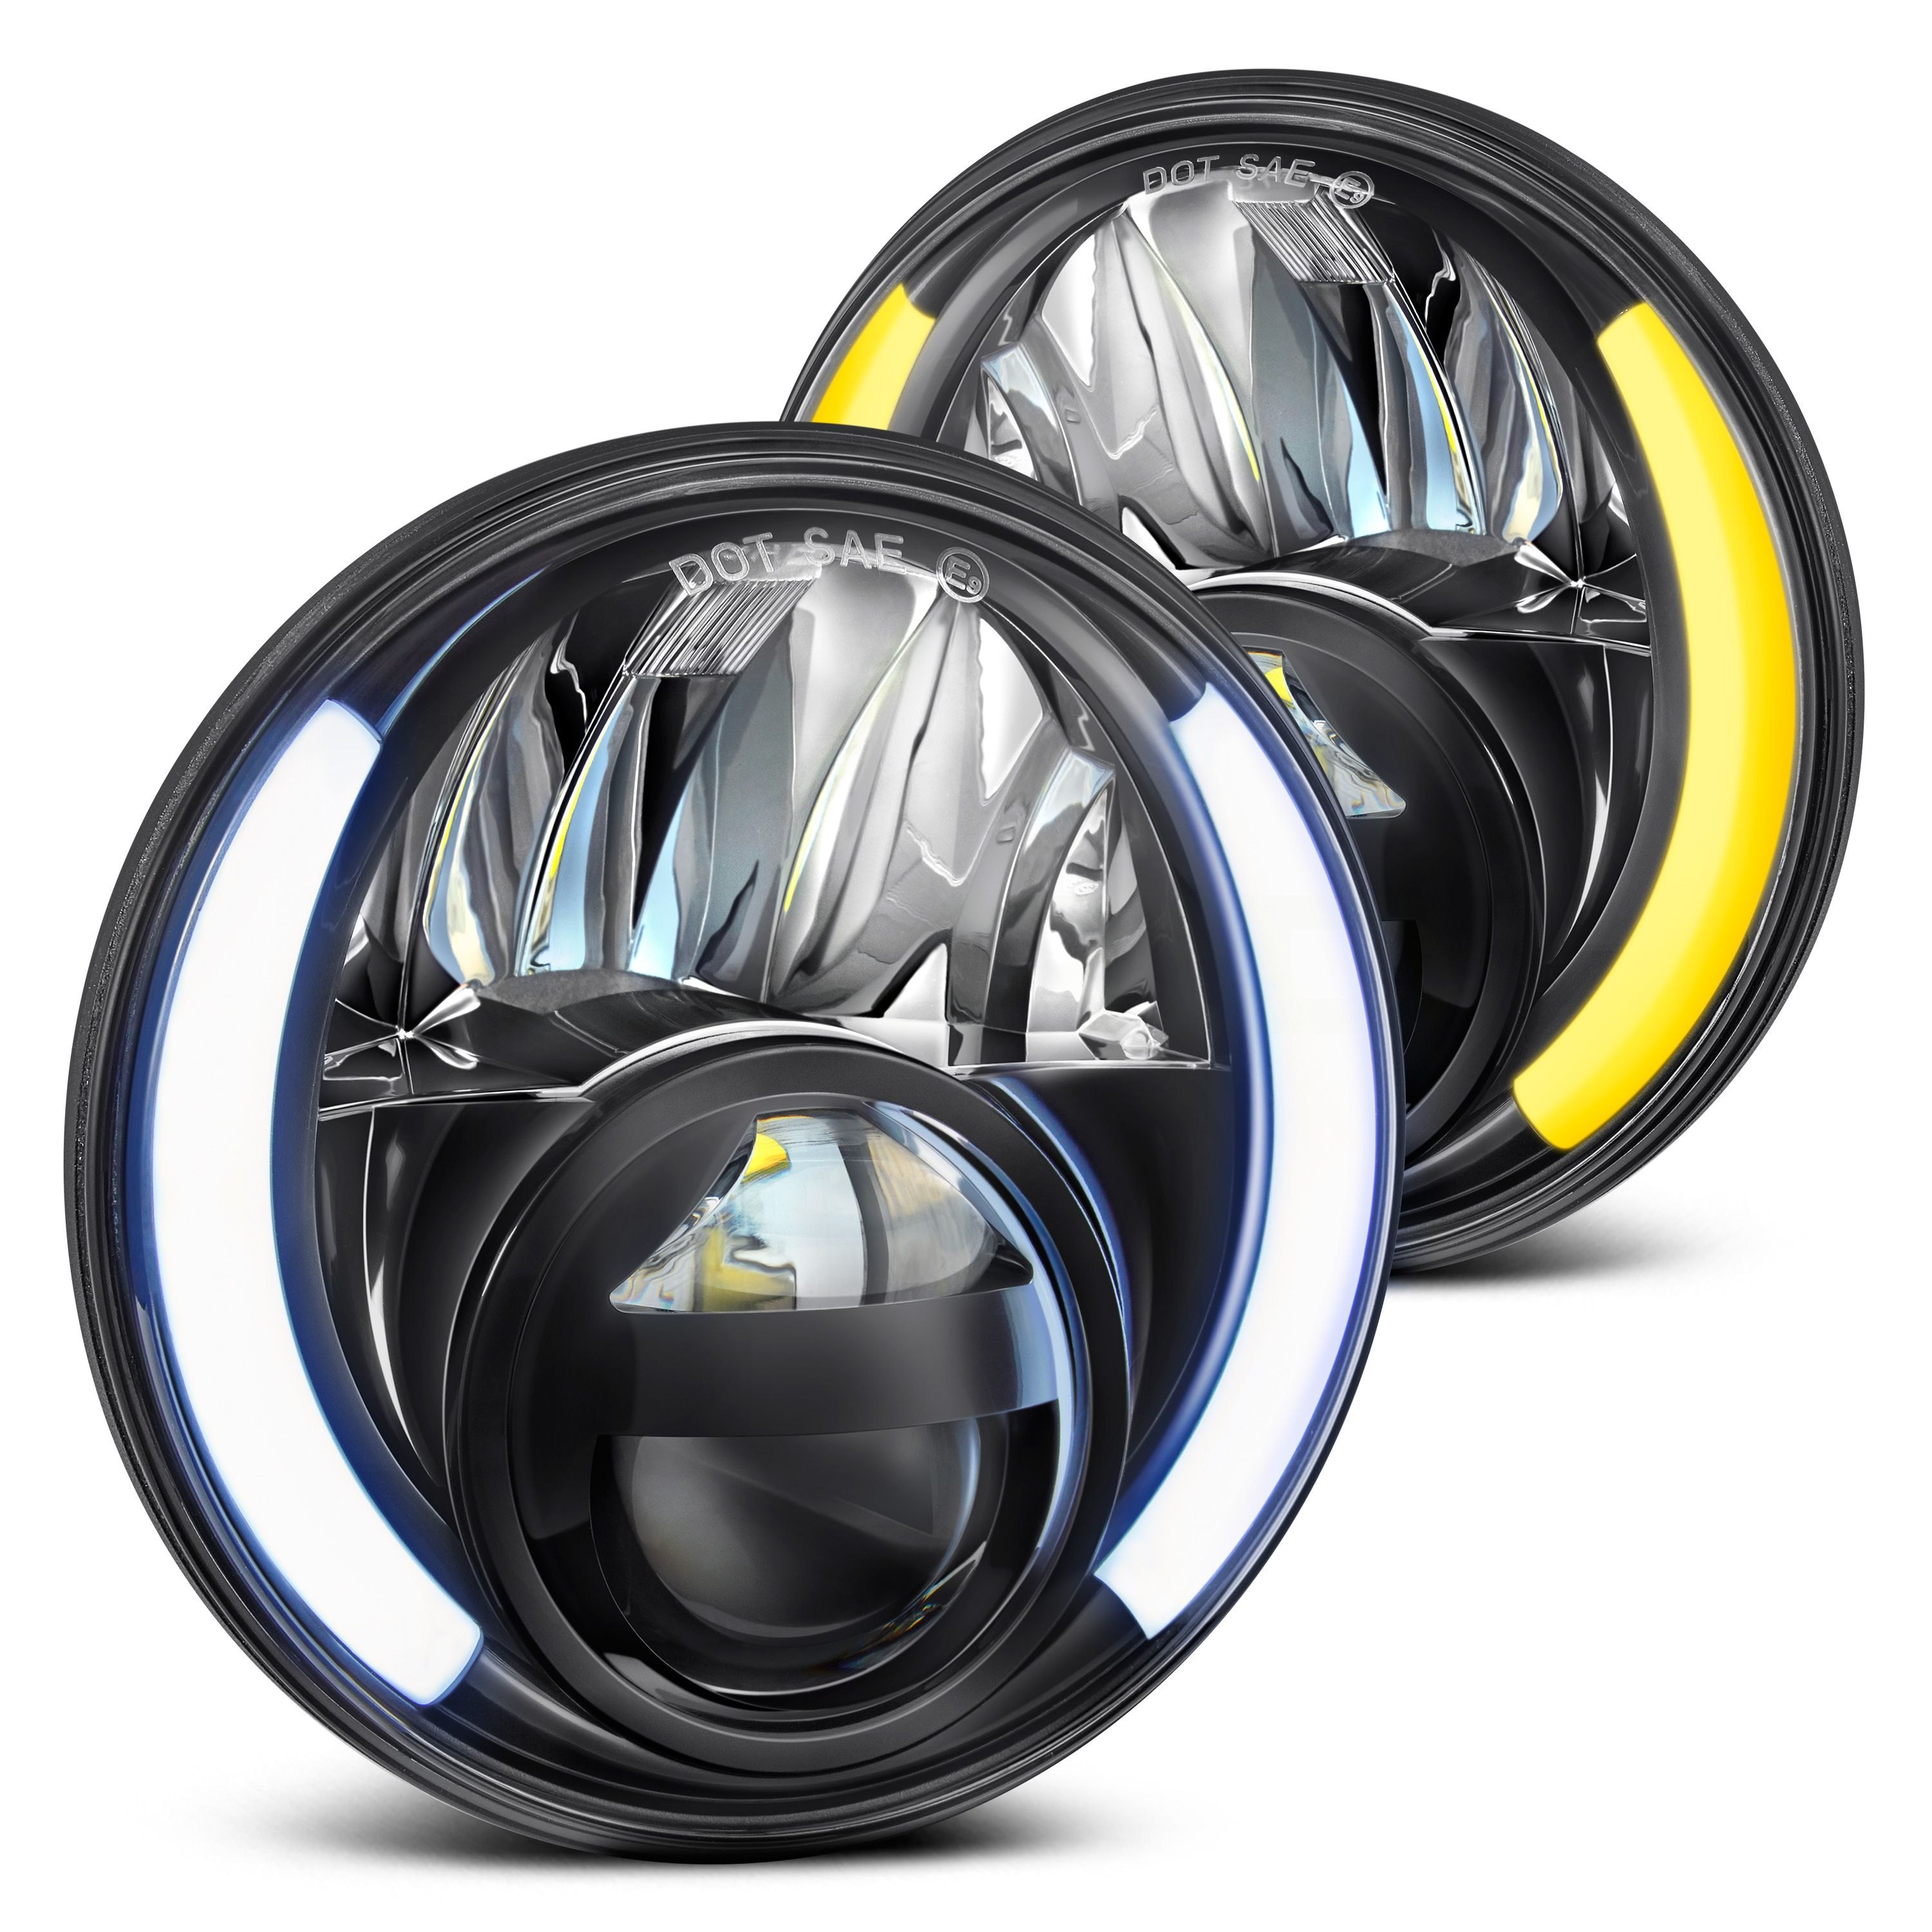 Image result for LED Headlights